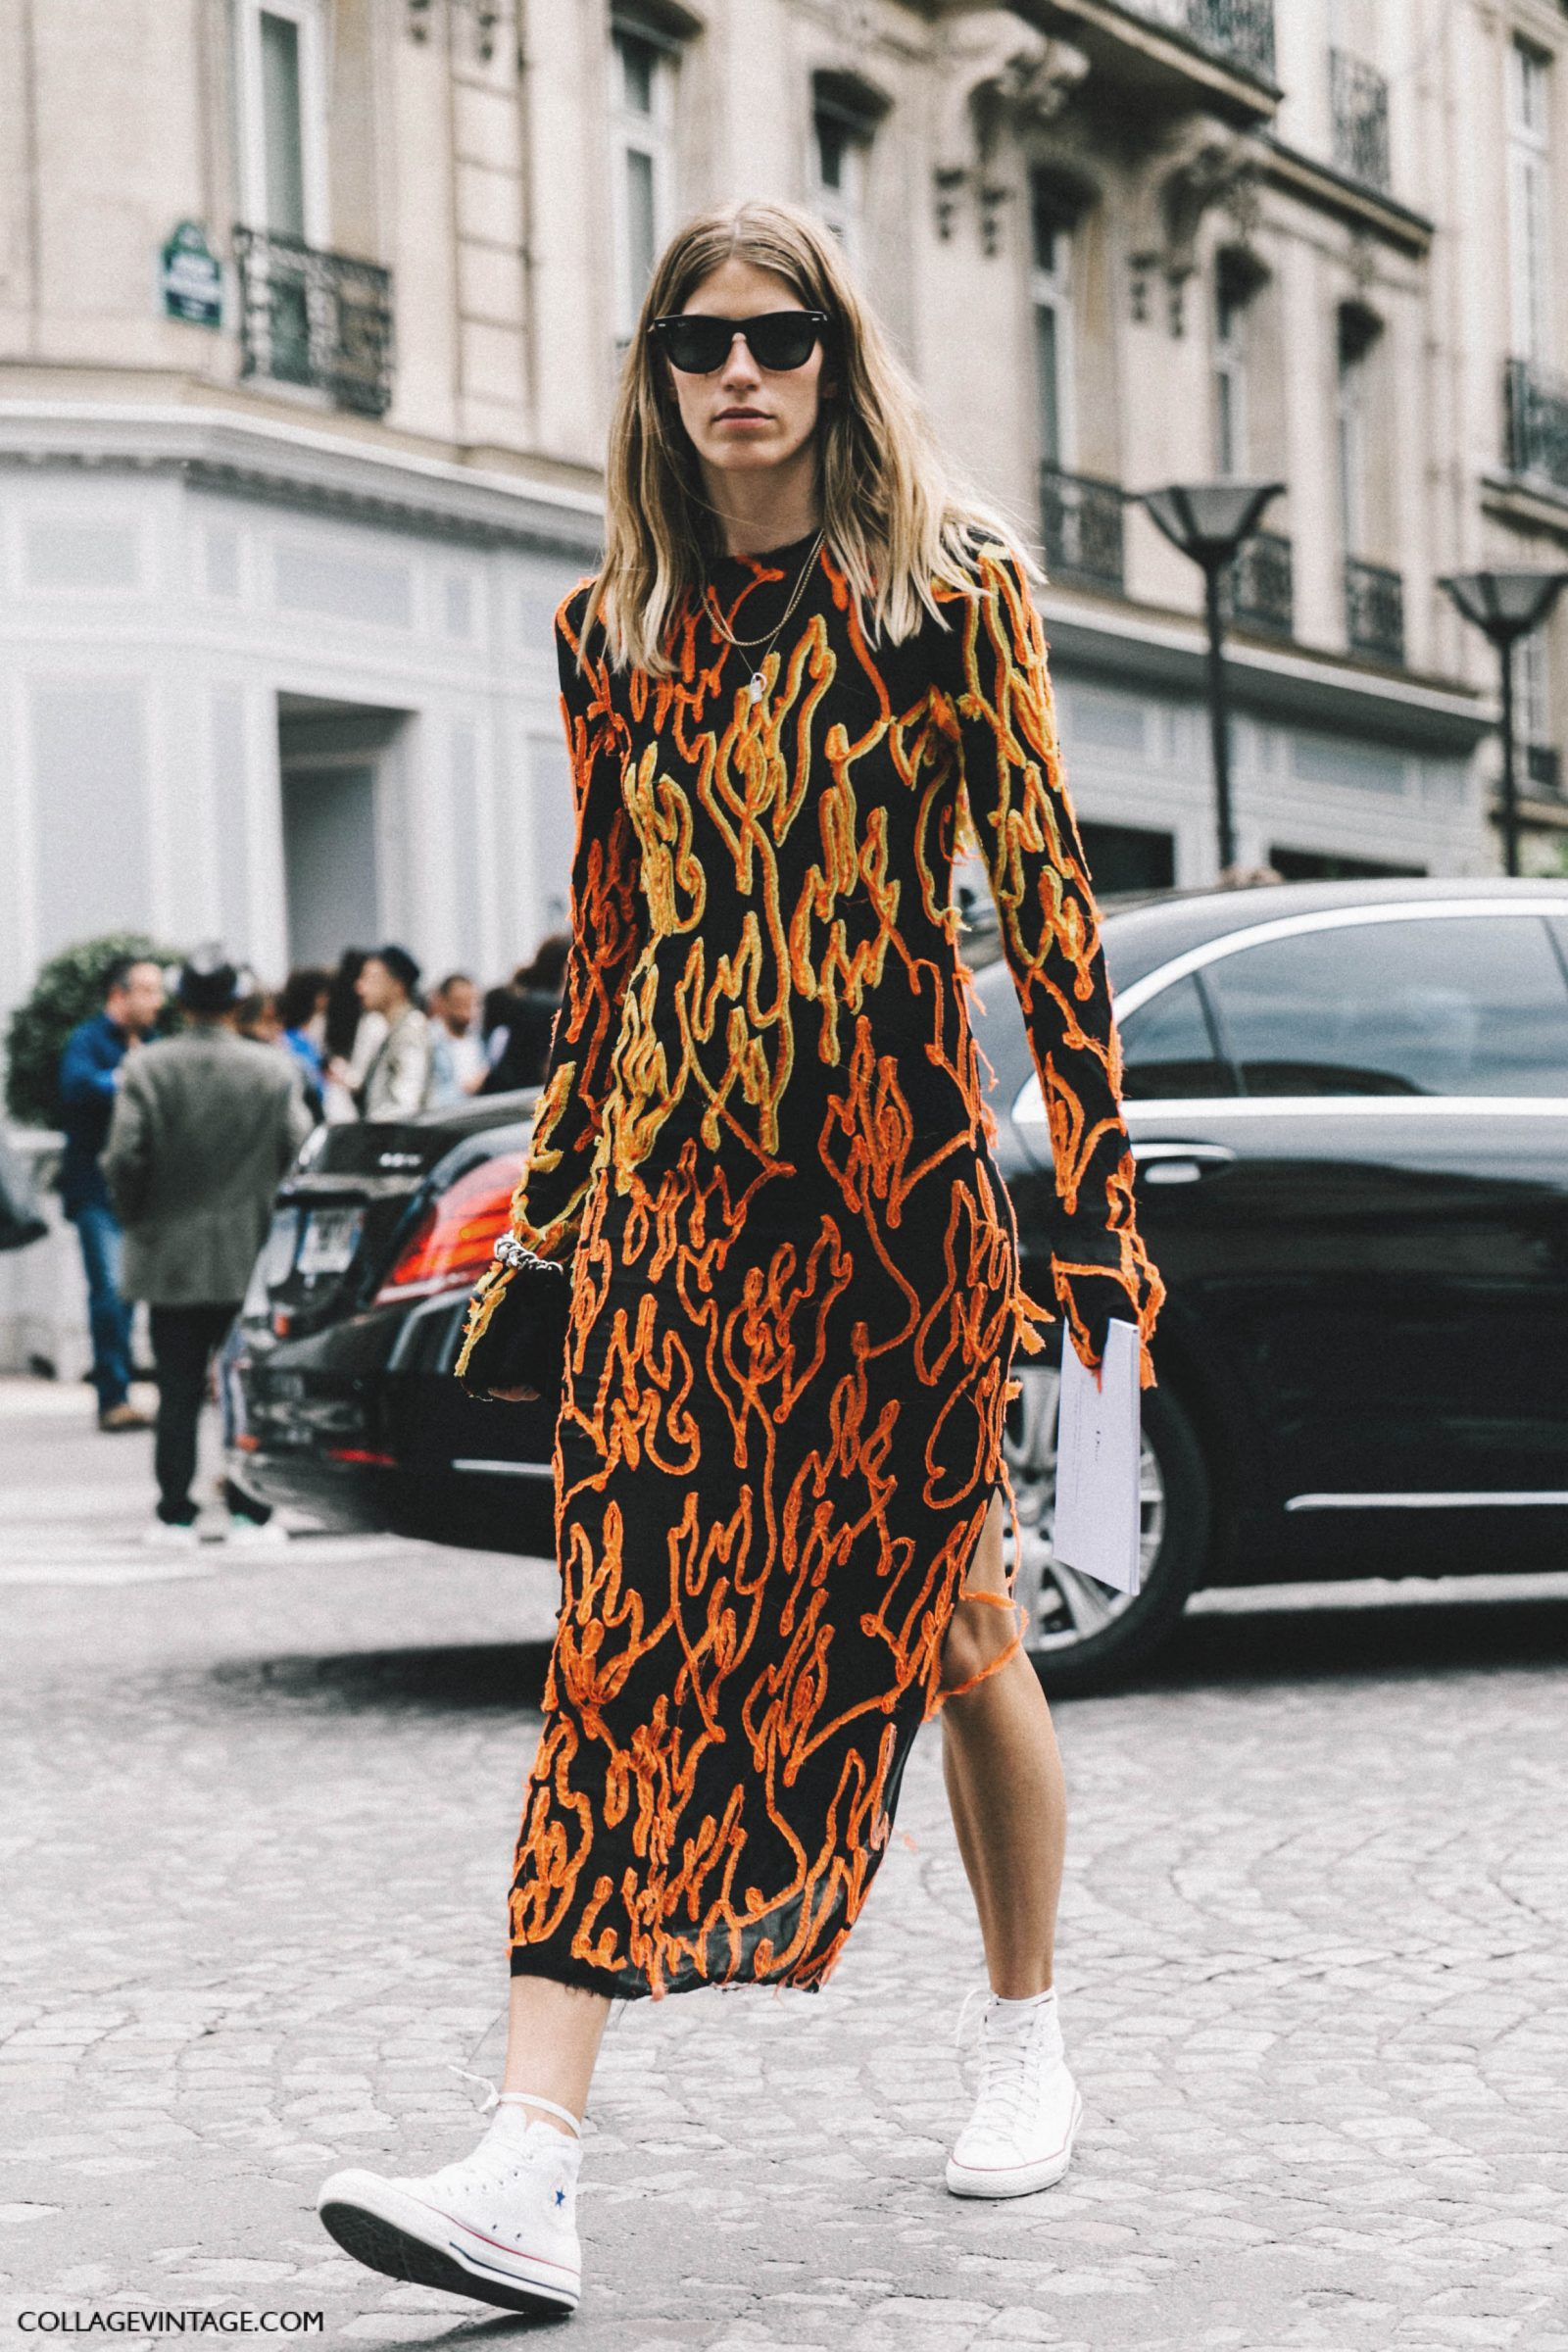 Paris_Couture_Fashion_Week-Collage_Vintage-Street_Style-103